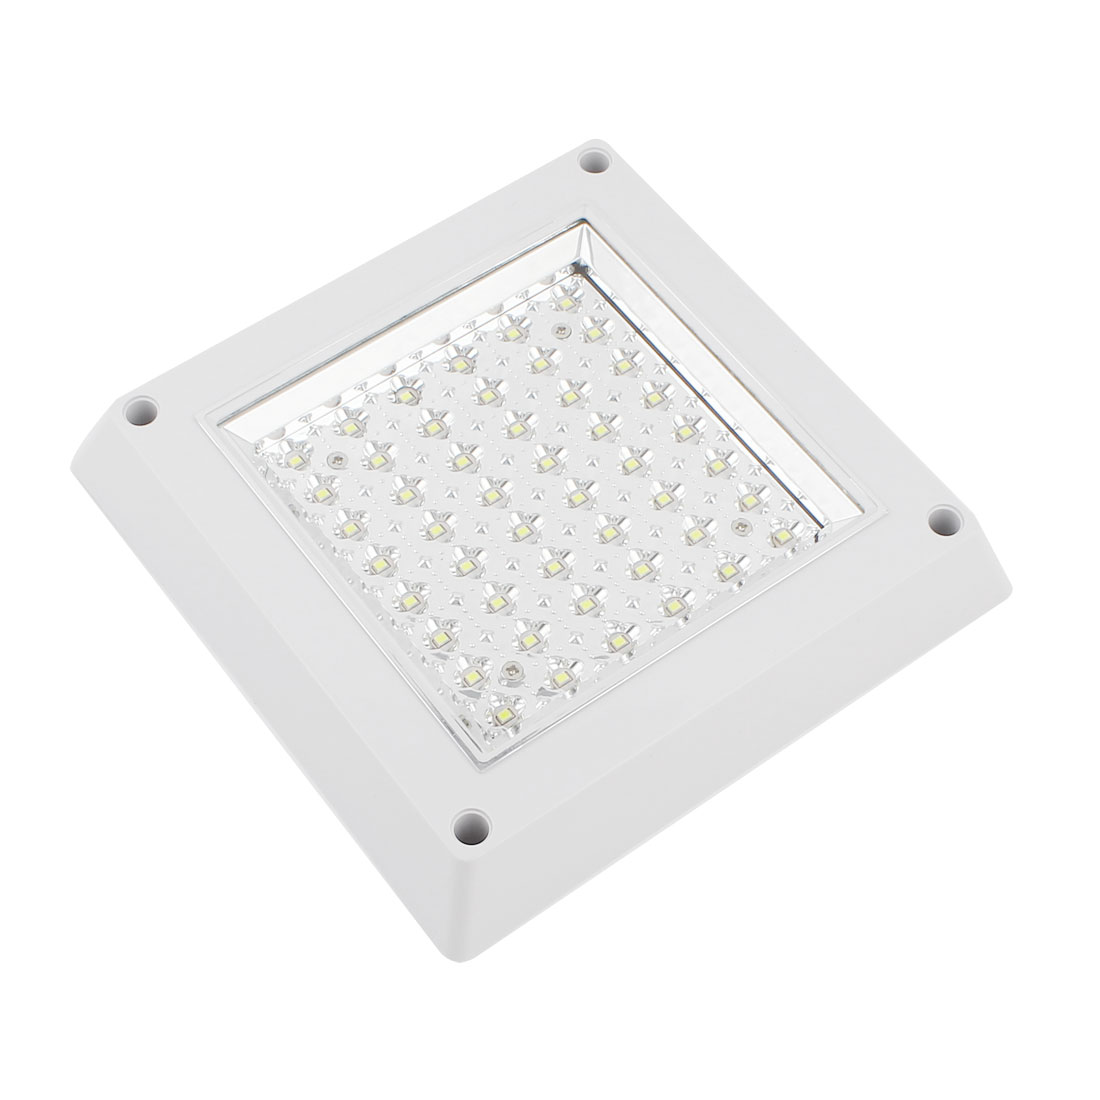 Surface Mount 48 LED White Ceiling Wall Downlight Square Panel Lamp Bulb 6W AC 220V